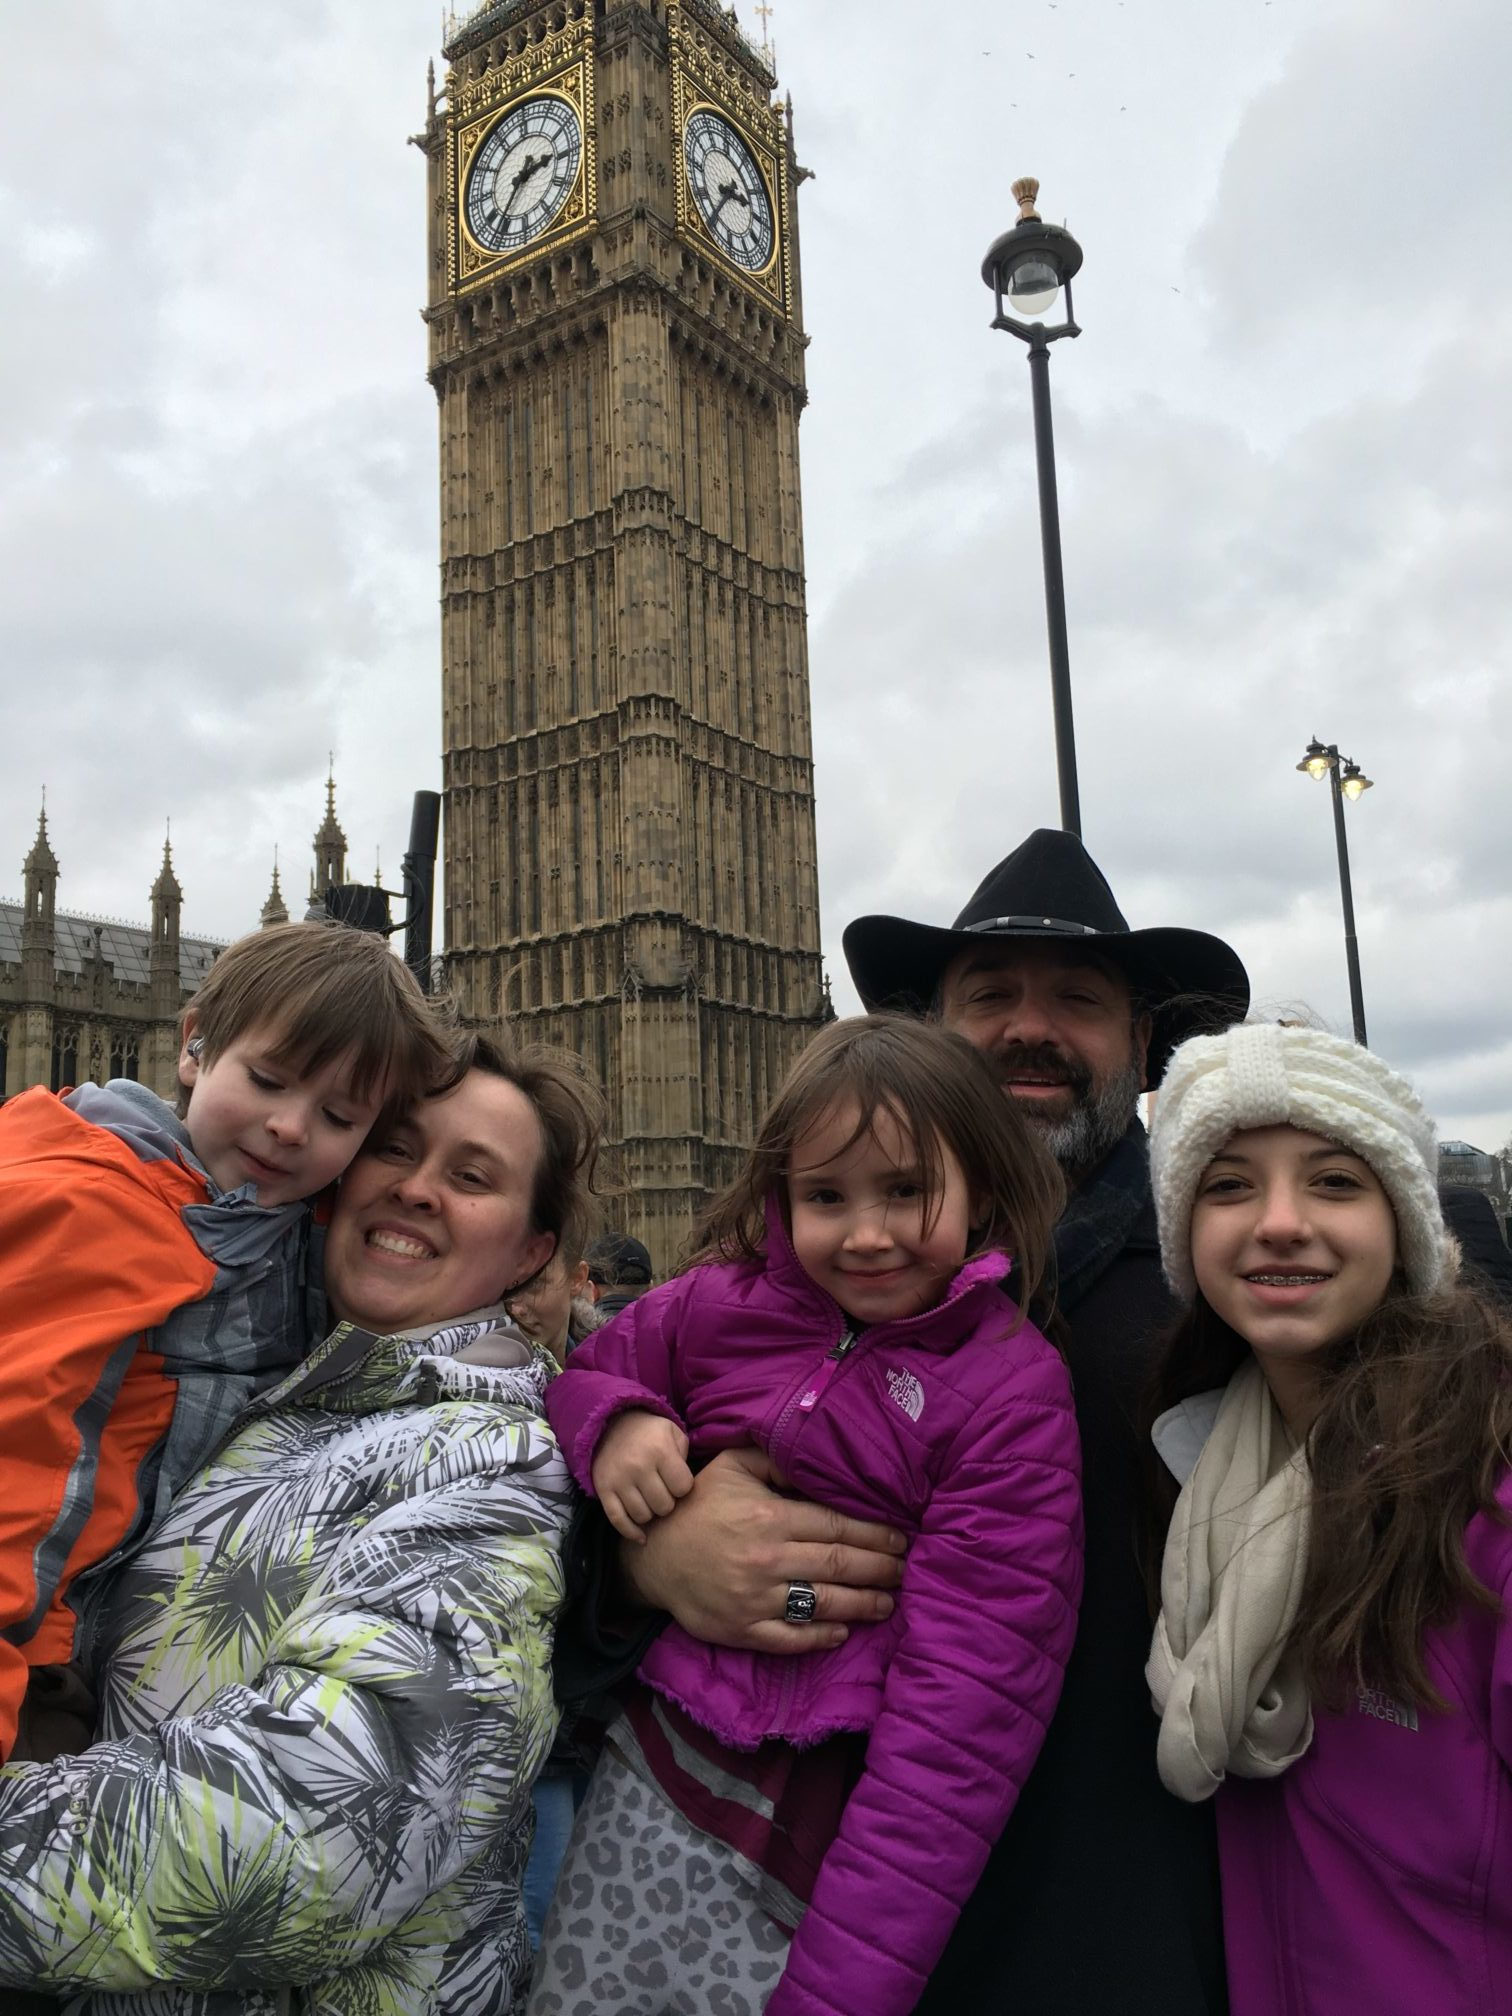 The Fryar's and Big Ben